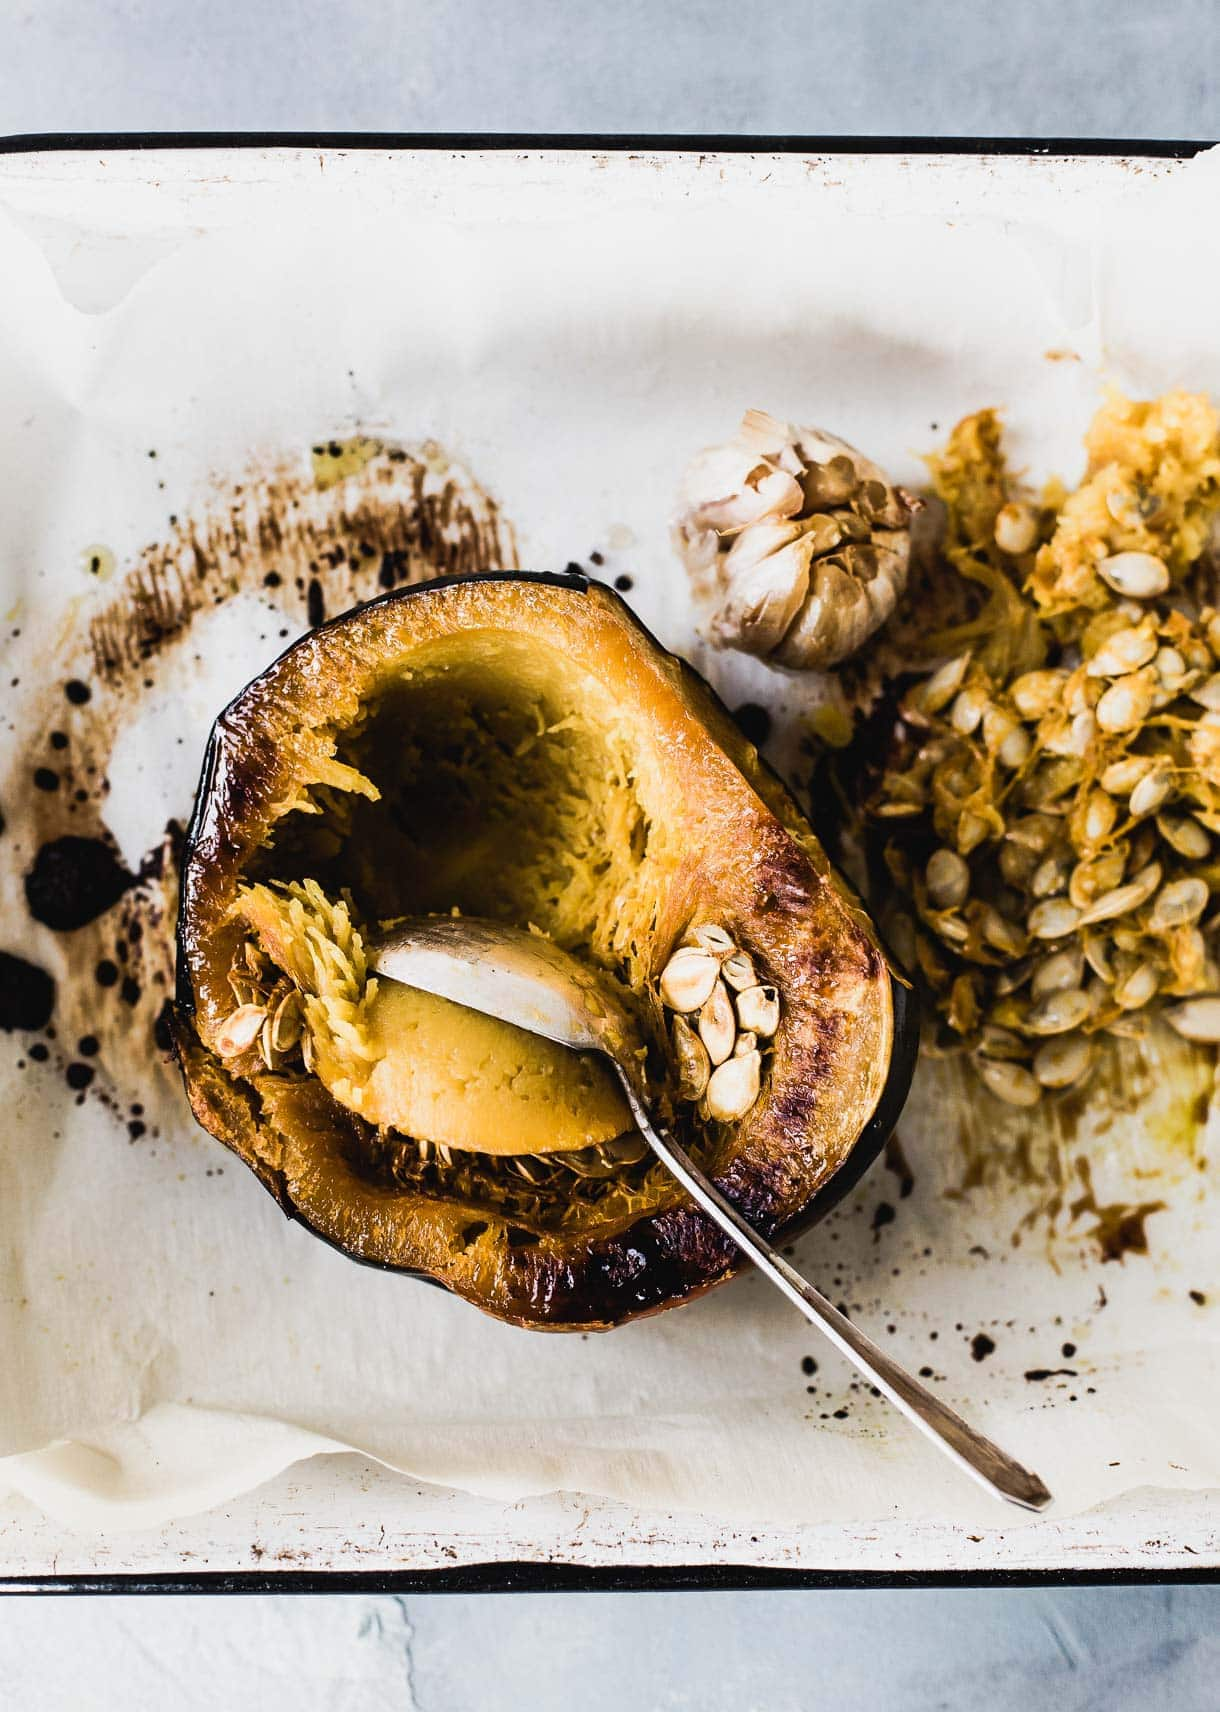 Roasted Acorn Squash in pan